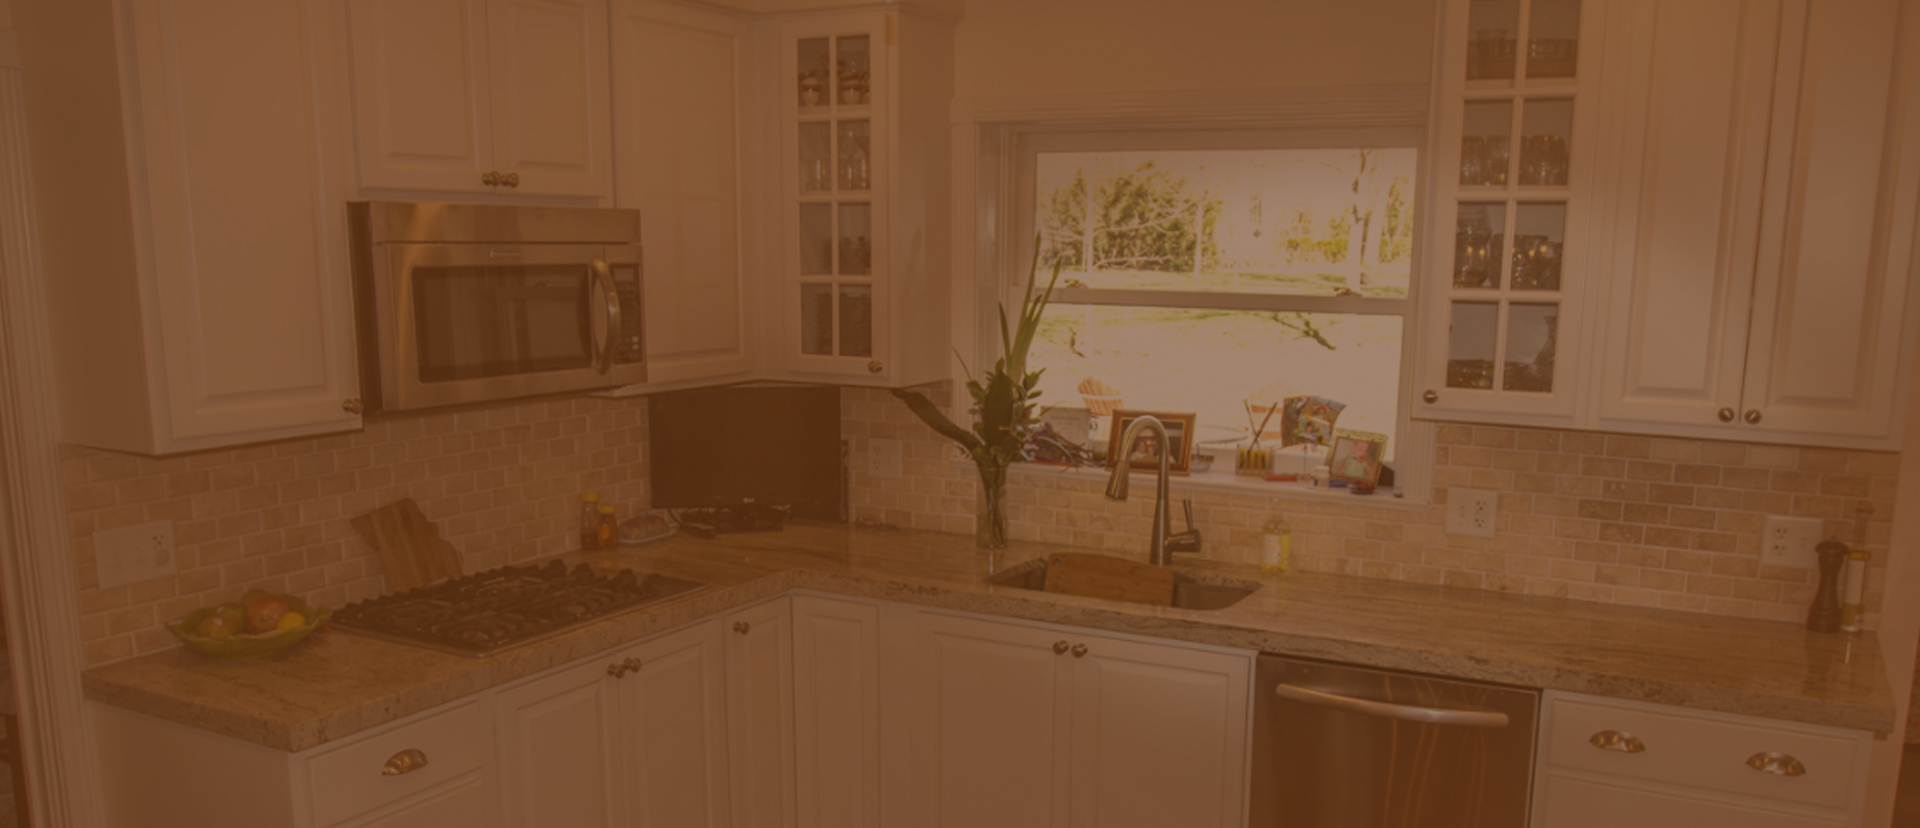 kitchen-remodel-saint-louis-missouri